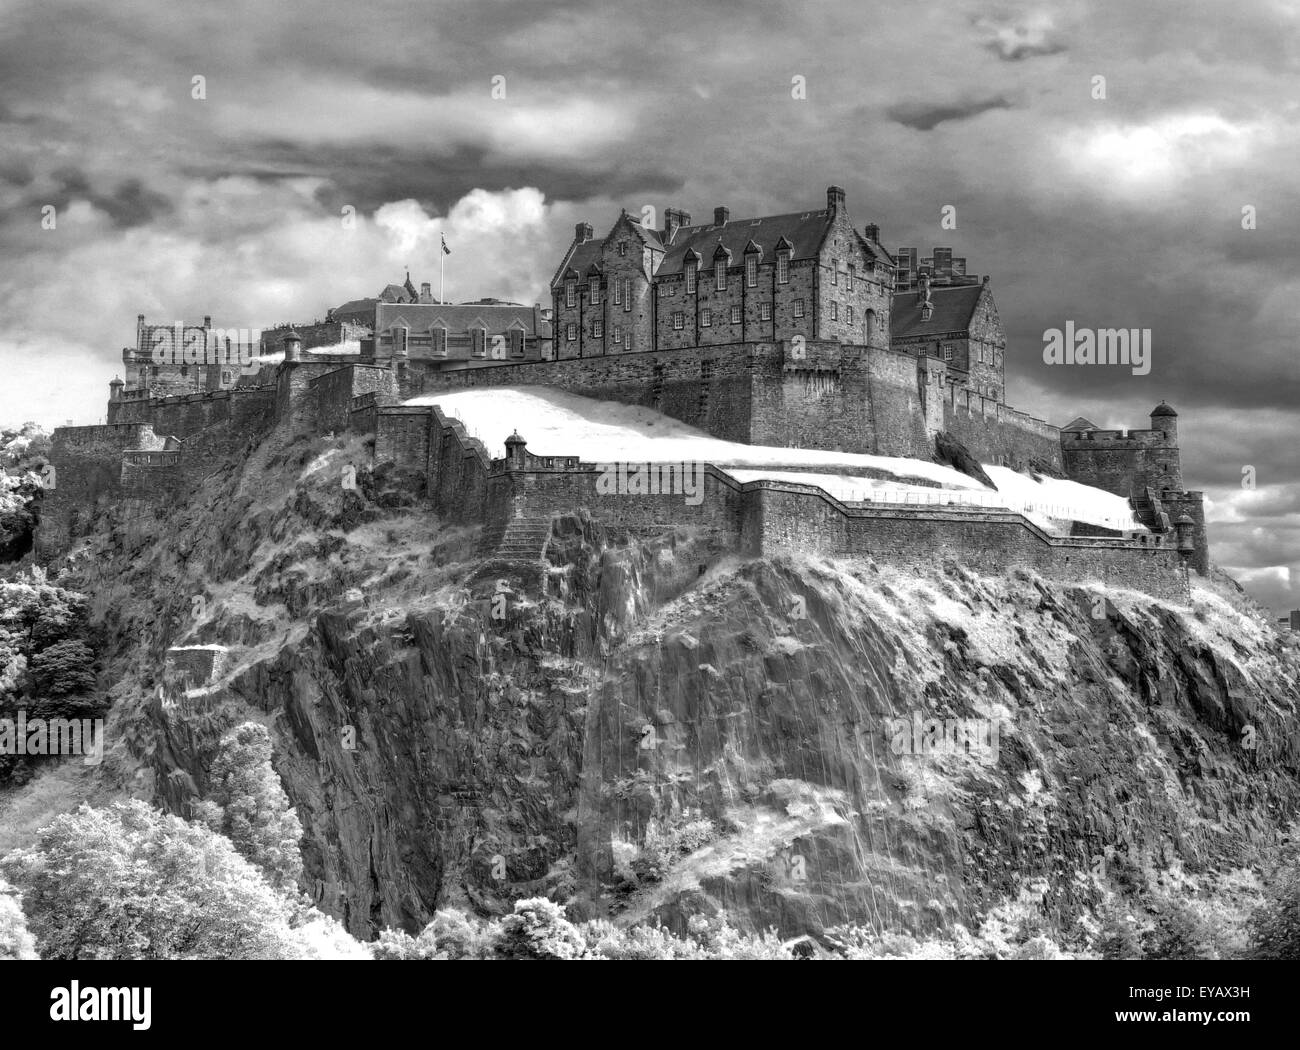 Edinburgh Castle with Dramatic sky, winter Old Town, Scotland - Unesco world heritage site, UK Stock Photo